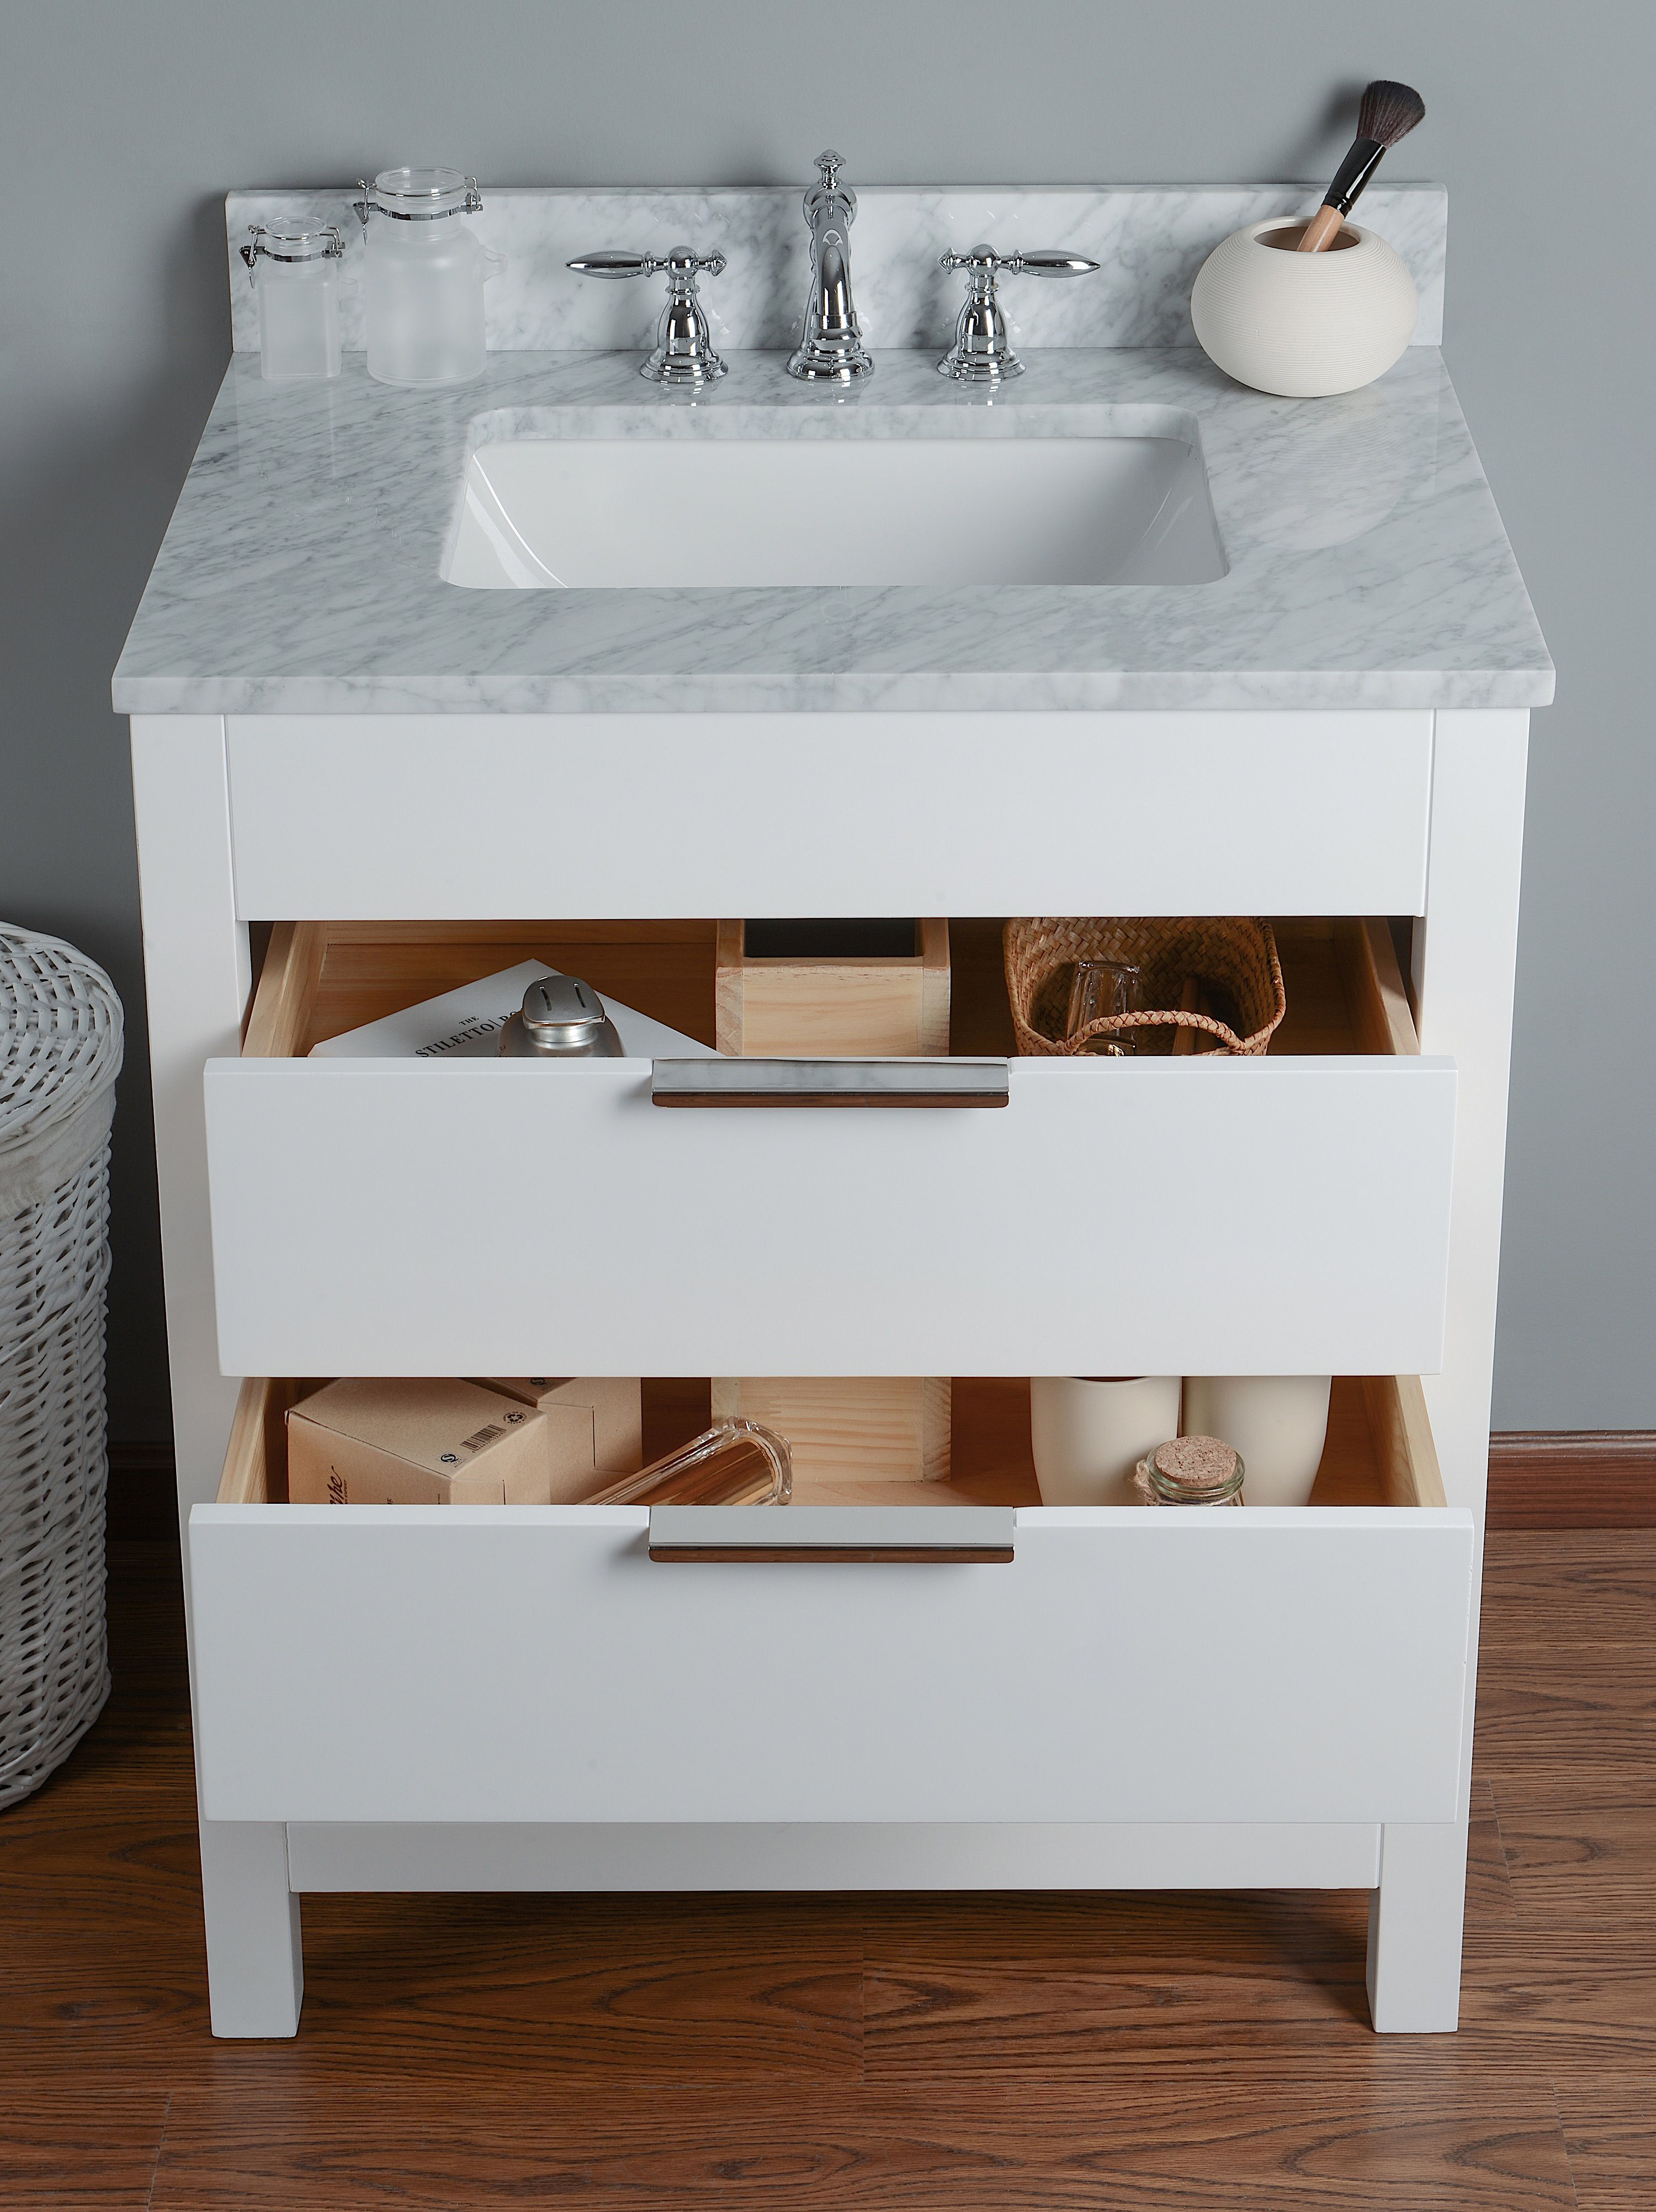 design source sink combo single inch bathrooms deep for integrated on shop innovative white project picturesque vanity bathroom intended interesting